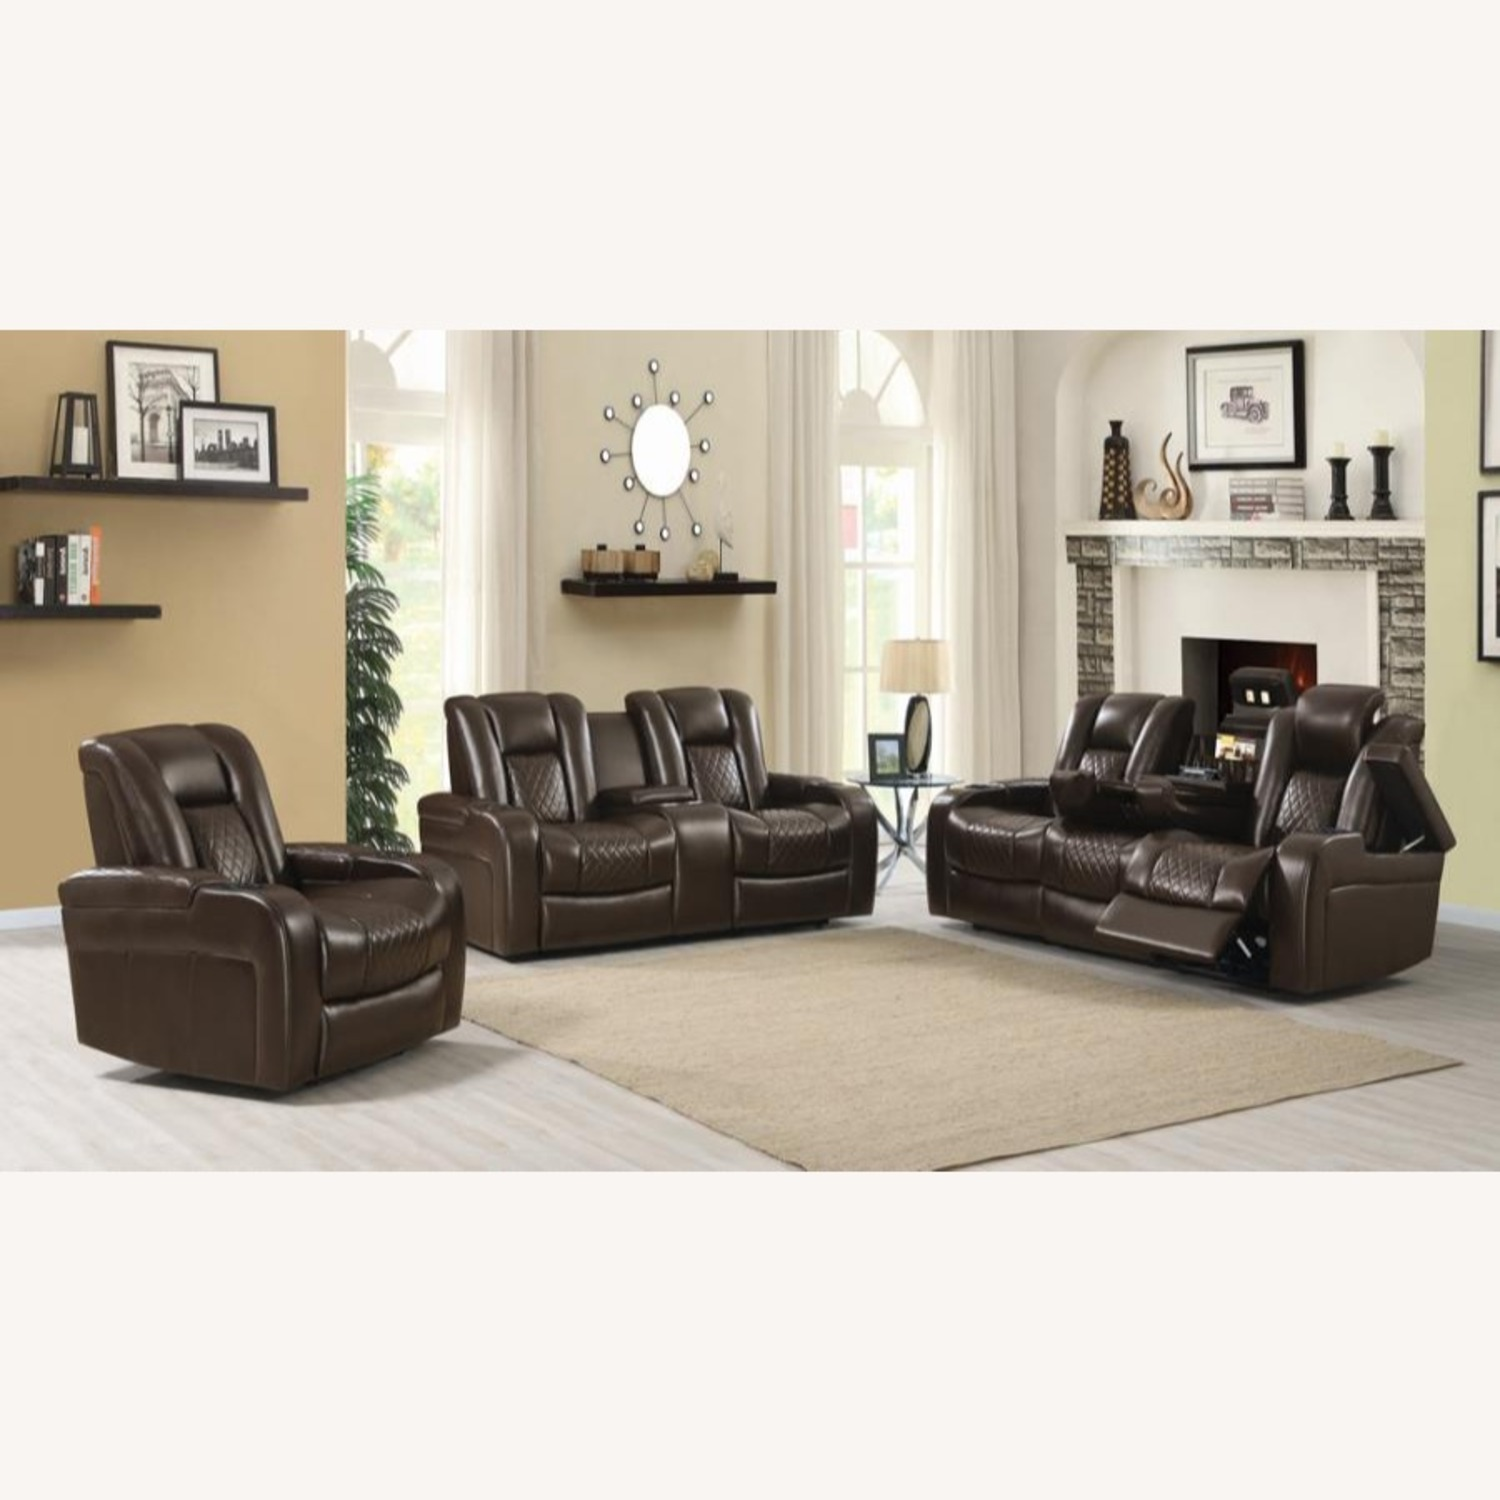 Power Recliner In Brown Performance Leatherette - image-9